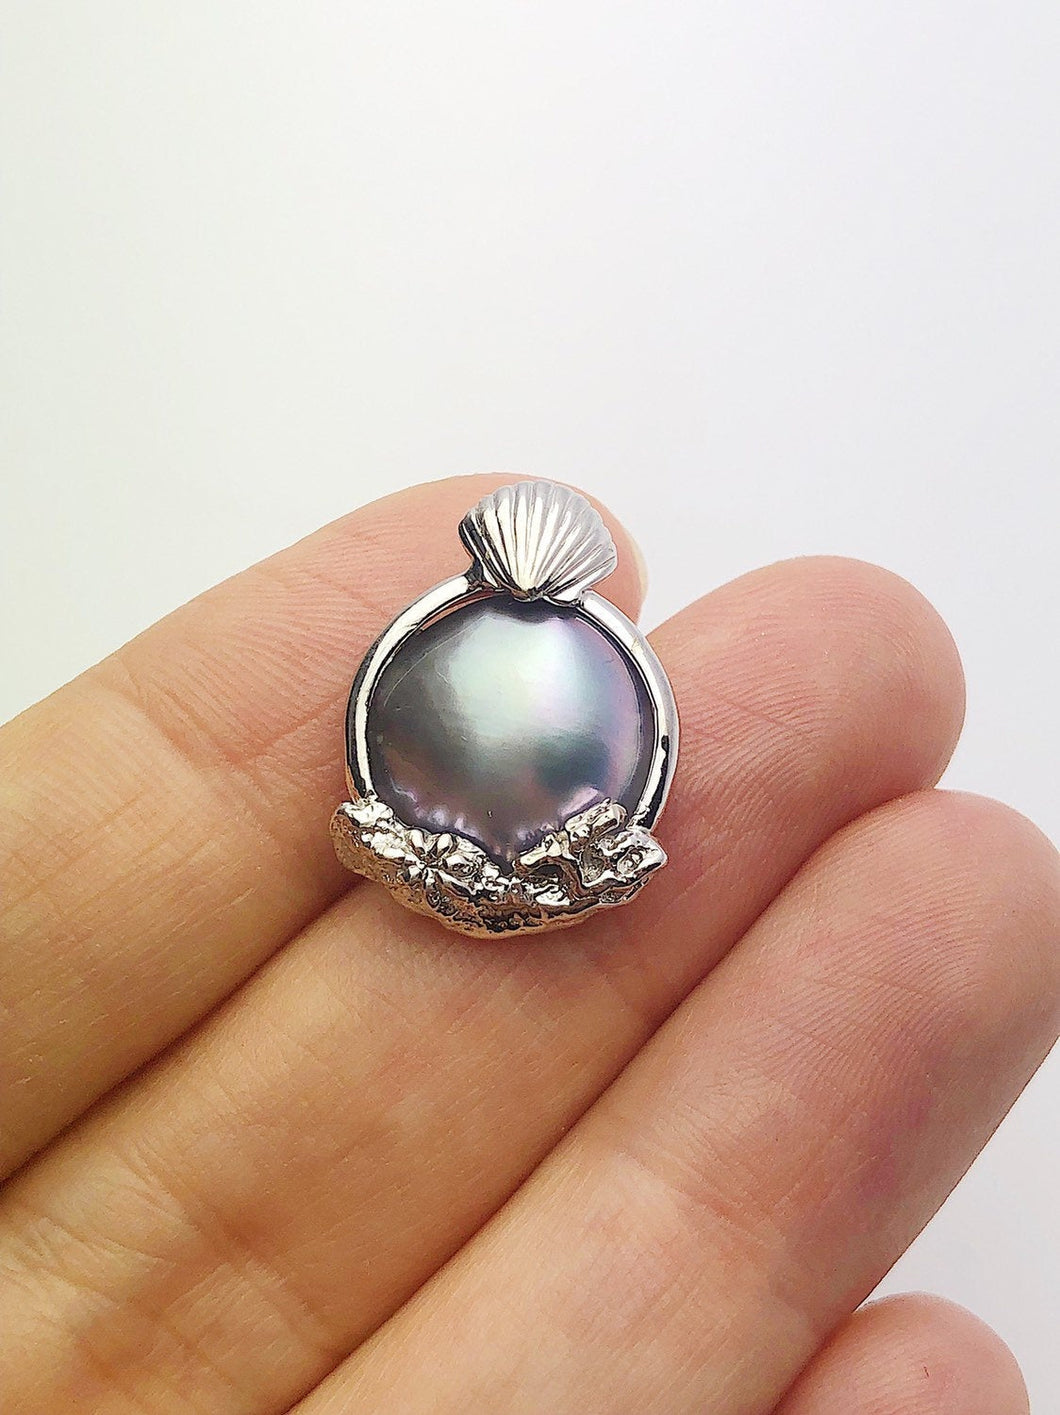 30% OFF - 14K White Gold Sea of Cortez Mabe Pearl Pendant, Made in Hawaii (#798)